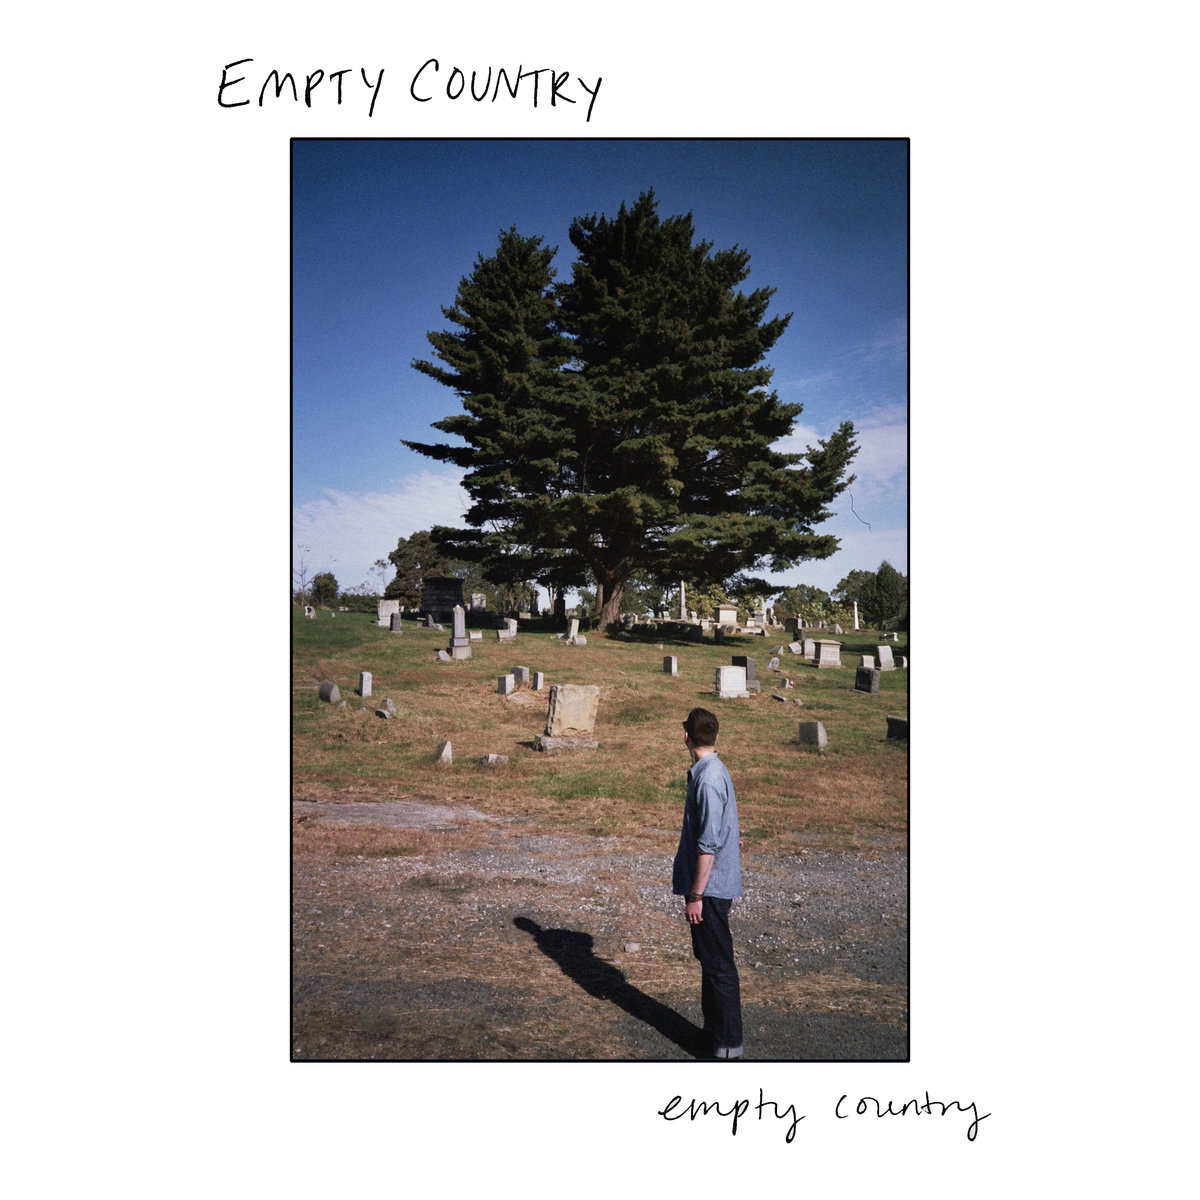 Empty Country album art